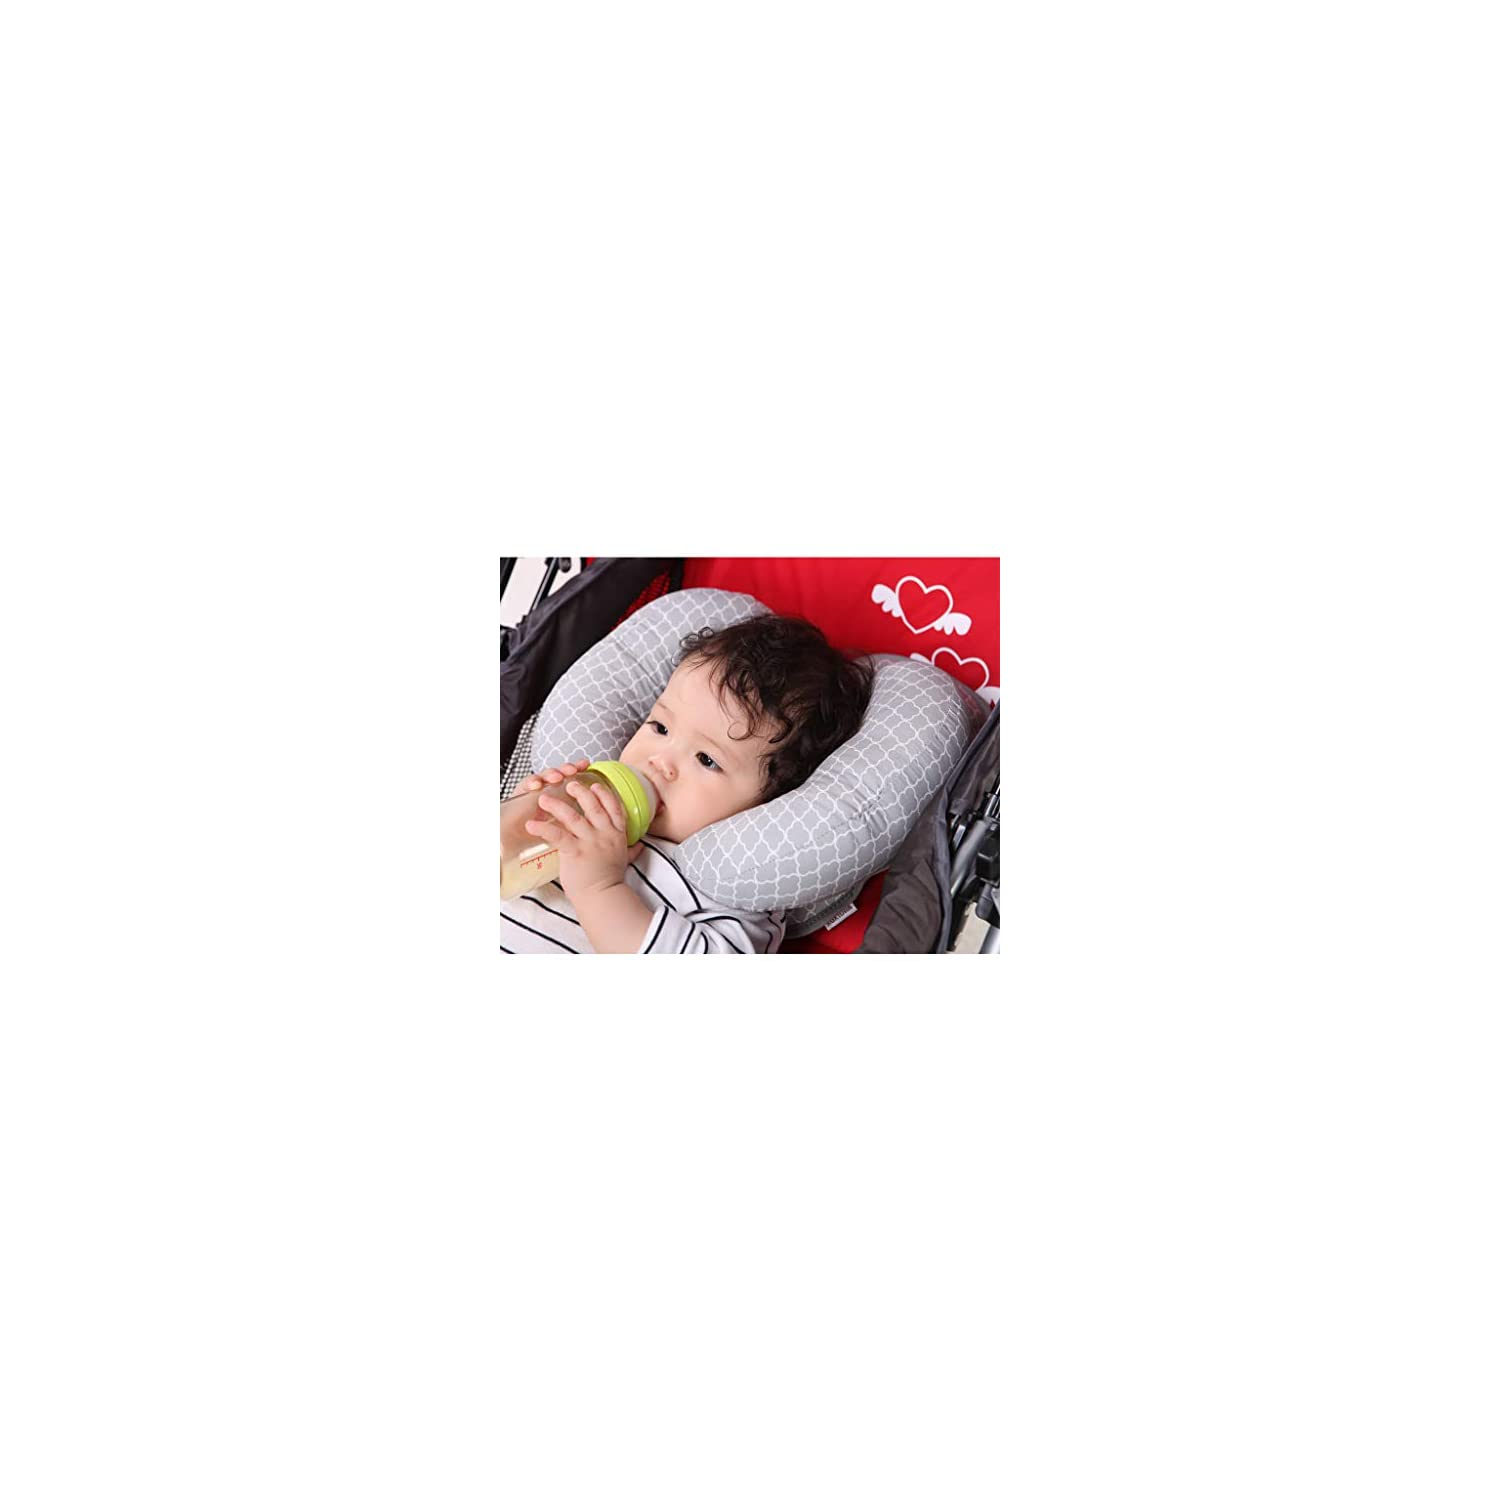 KAKIBLIN 2 in 1 Anti Flat Head Pillow with Banana Neck Pillow for 3 Months to 1 Years Baby Travel Pillow for Stroller, 27x21cm